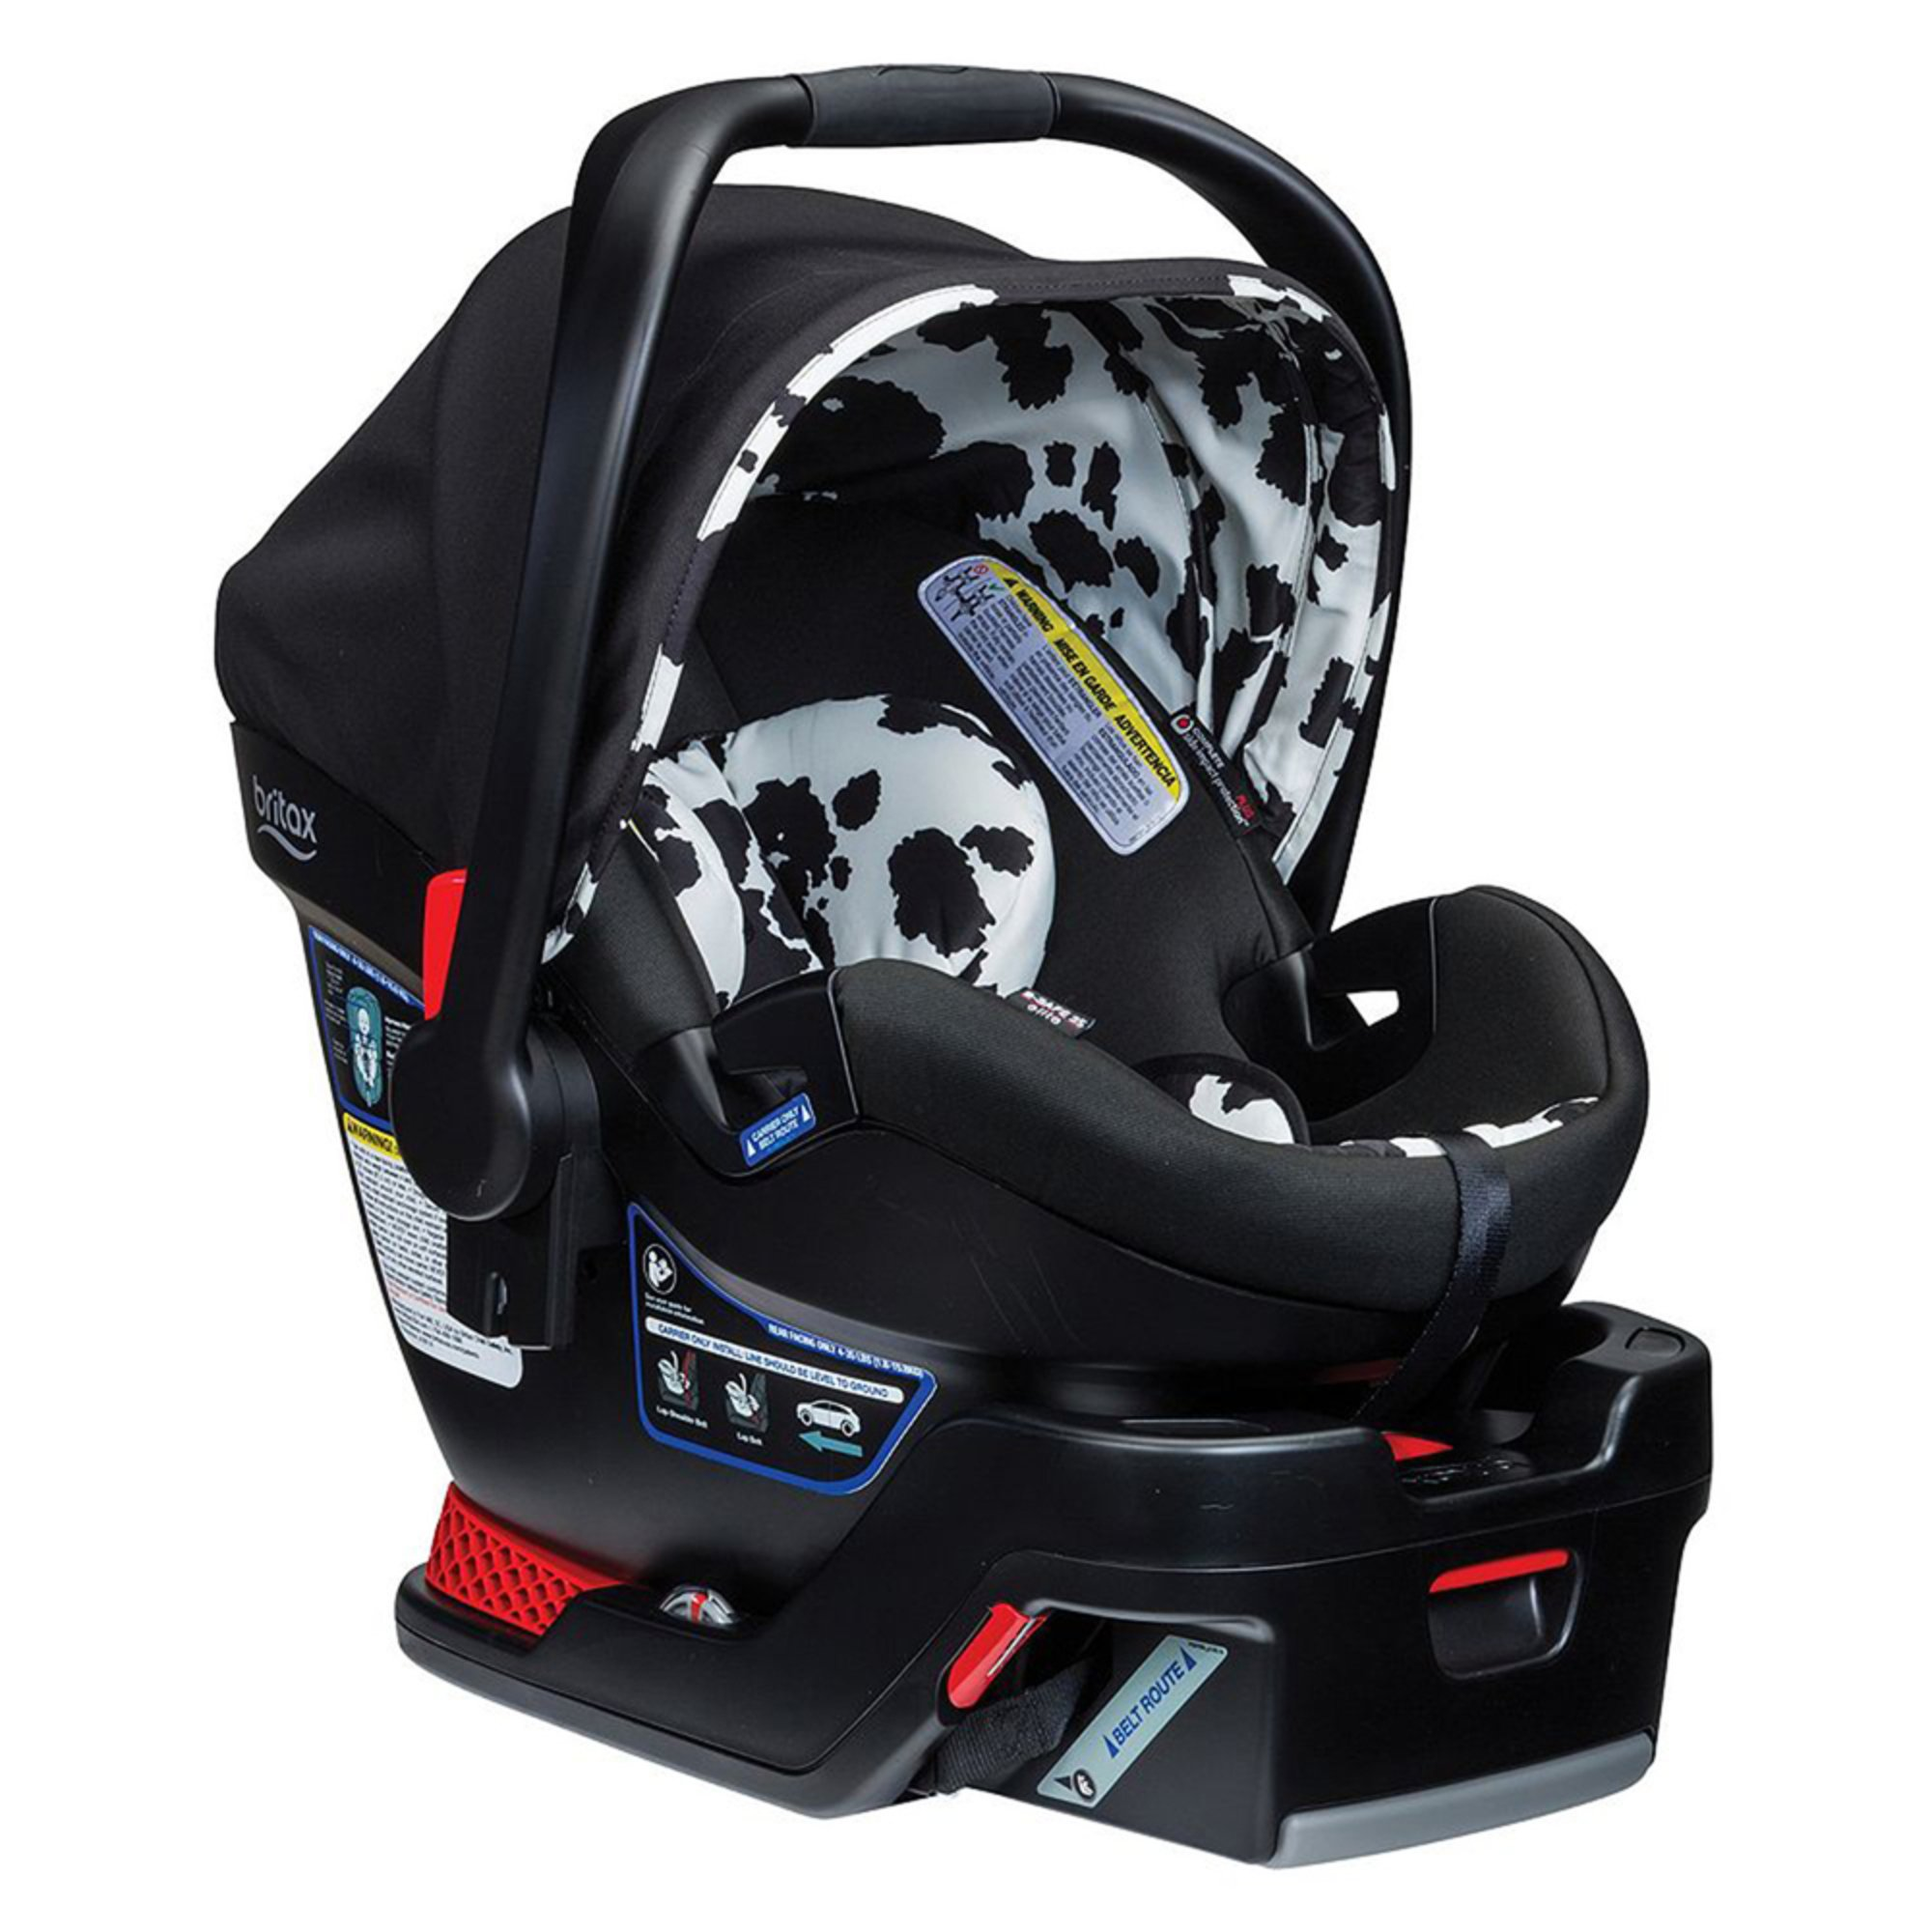 britax b safe 35 elite infant car seat cowmooflage infant car seats kids shop your navy. Black Bedroom Furniture Sets. Home Design Ideas